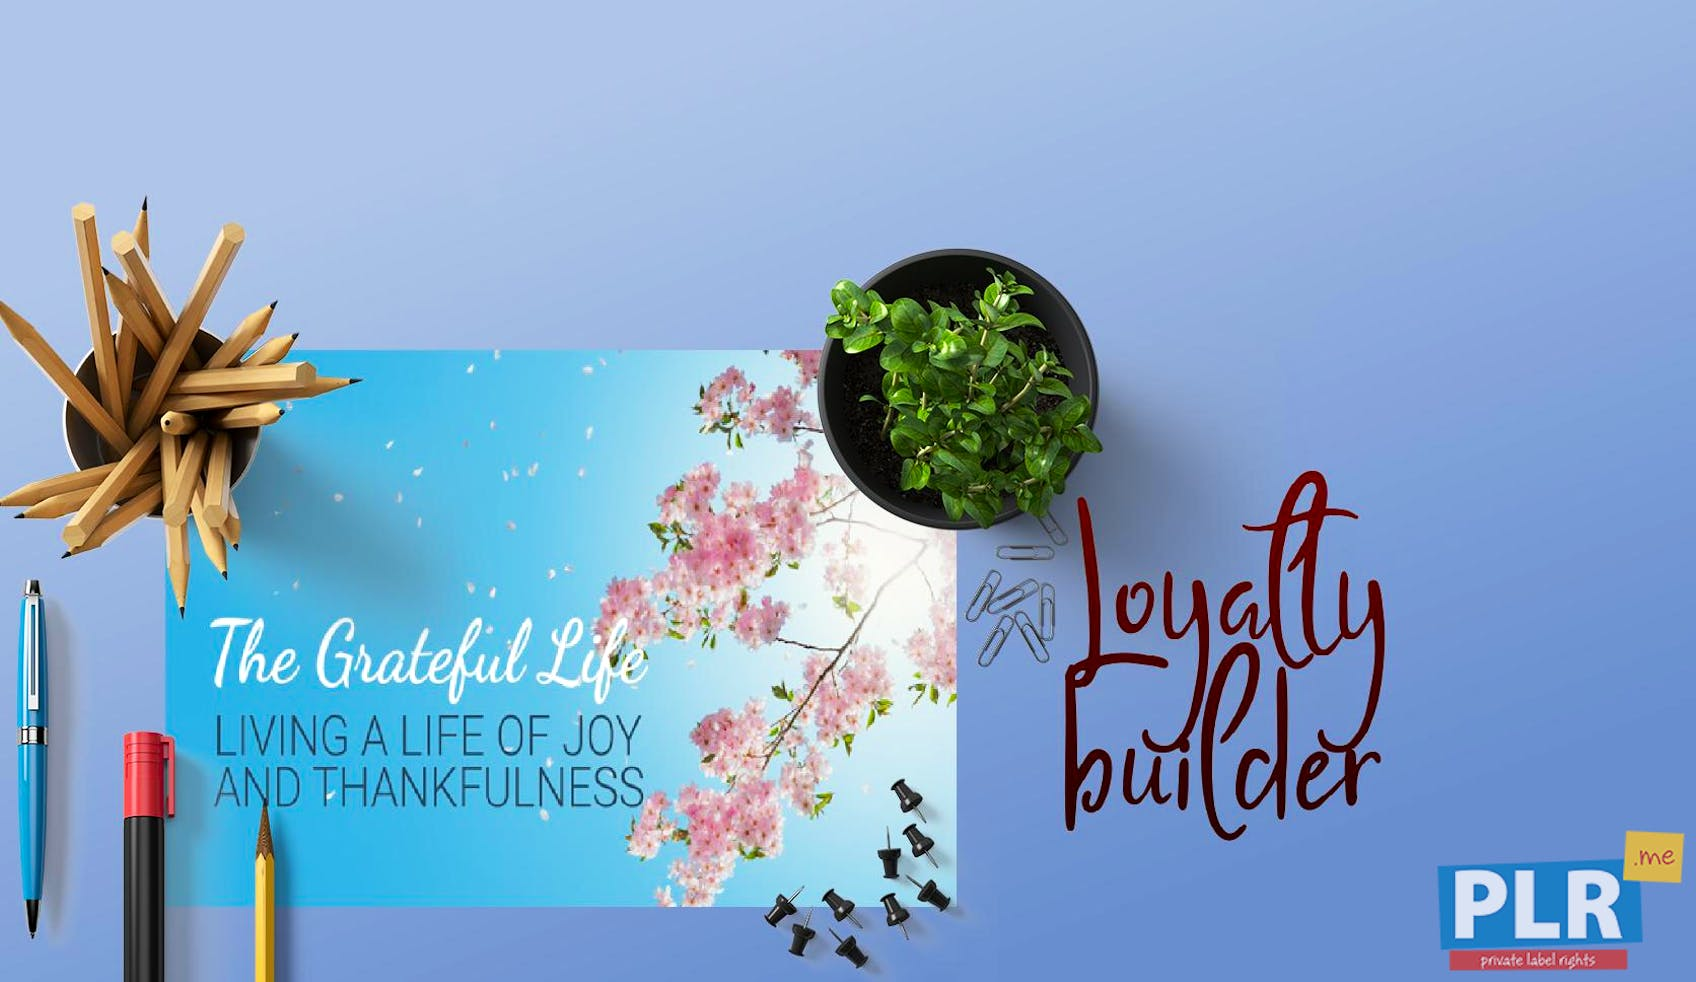 The Grateful Life - Living With Joy And Thankfulness - Slide Deck